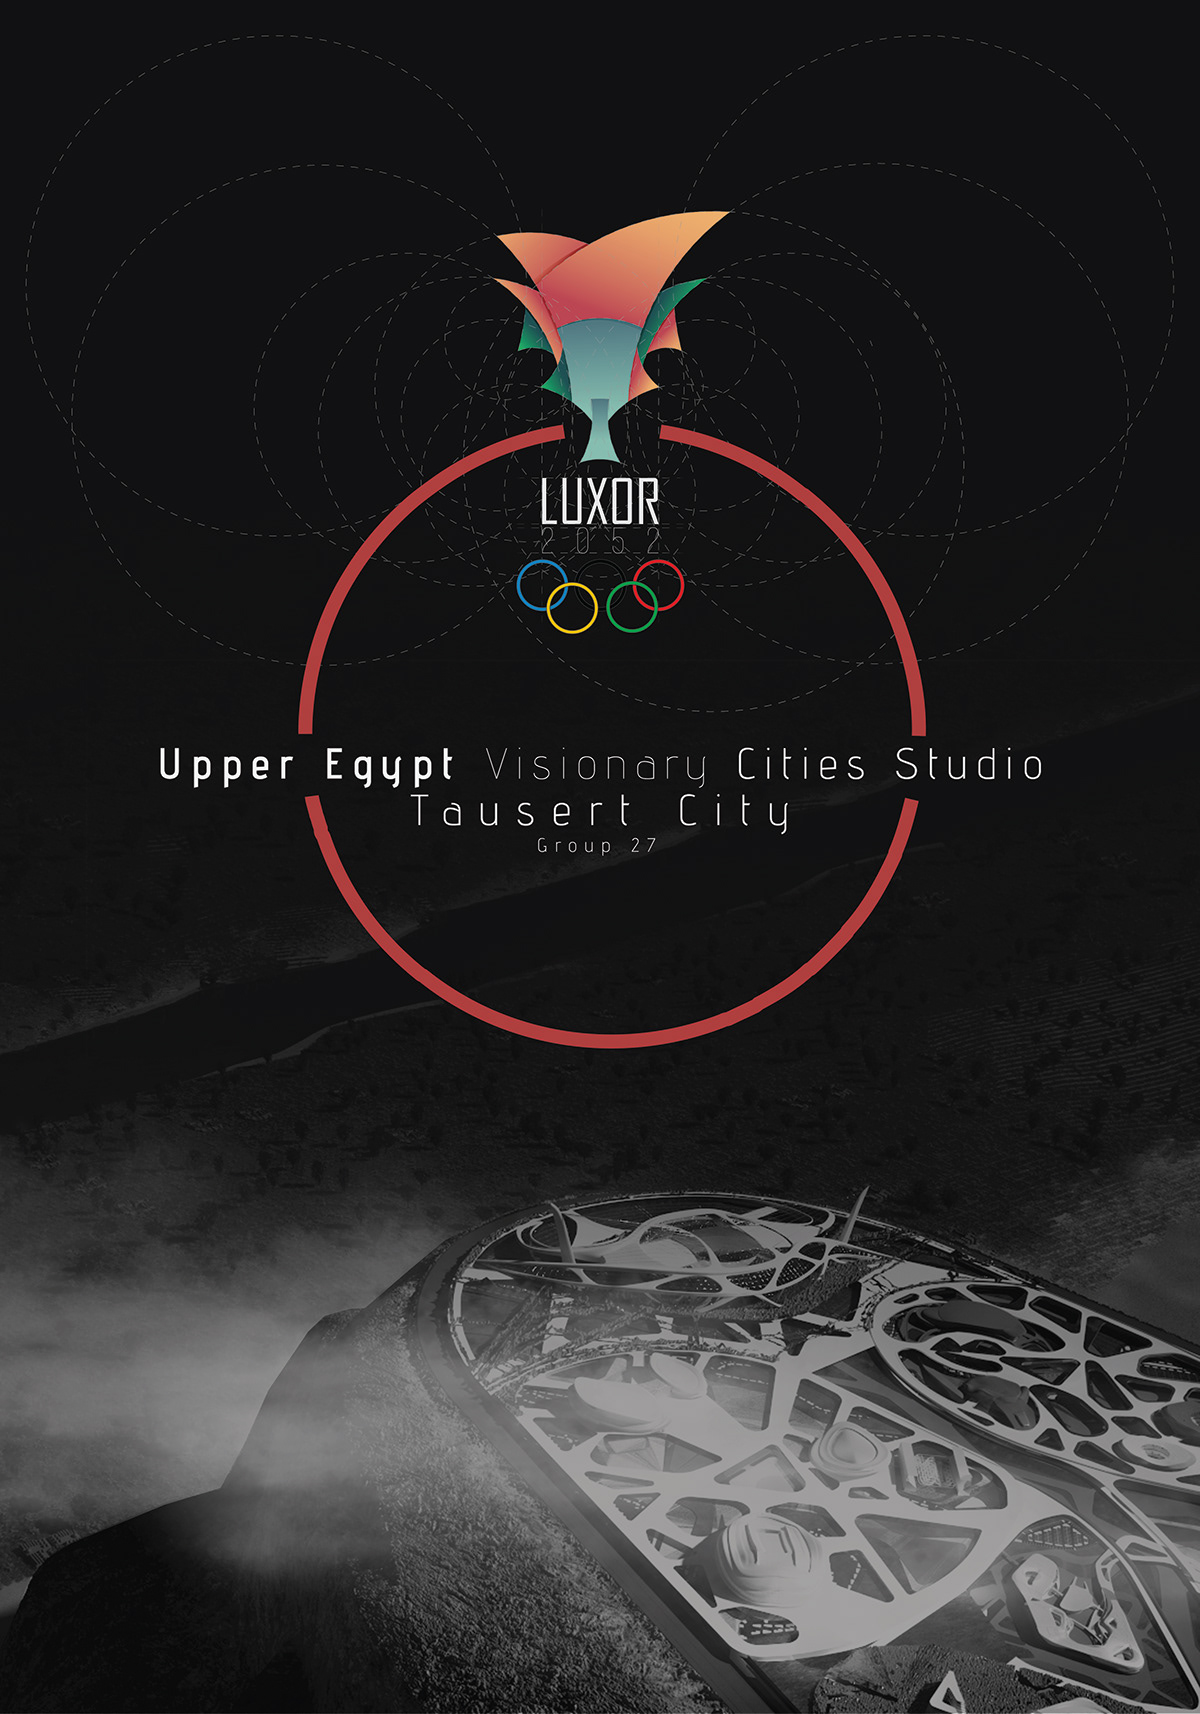 TAUSERT Olympic city, Luxor 2052 - Graduation Project